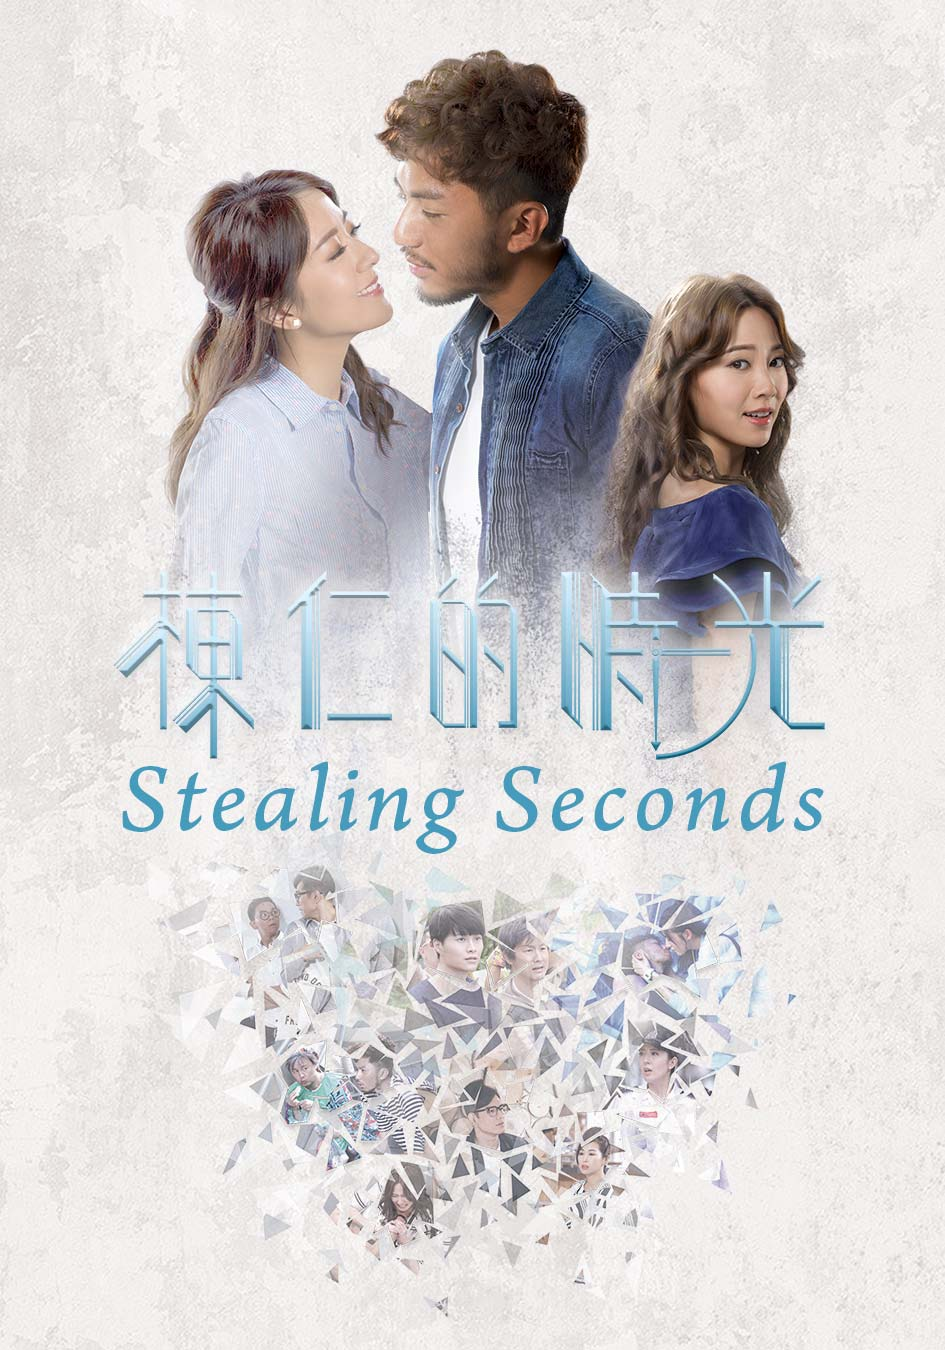 Stealing Seconds-Stealing Seconds